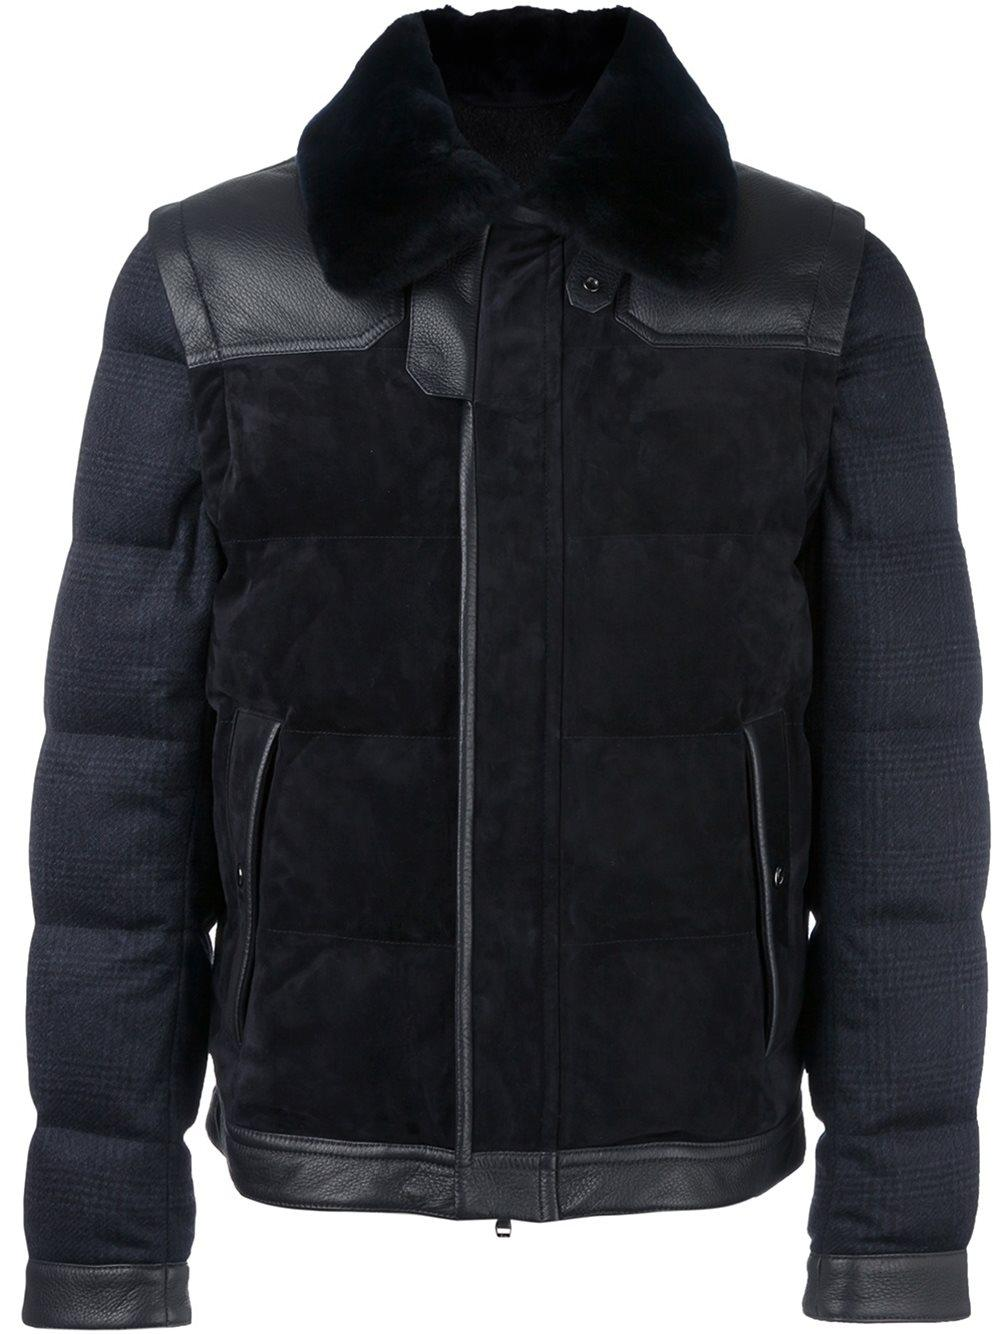 North Face Winter Jackets